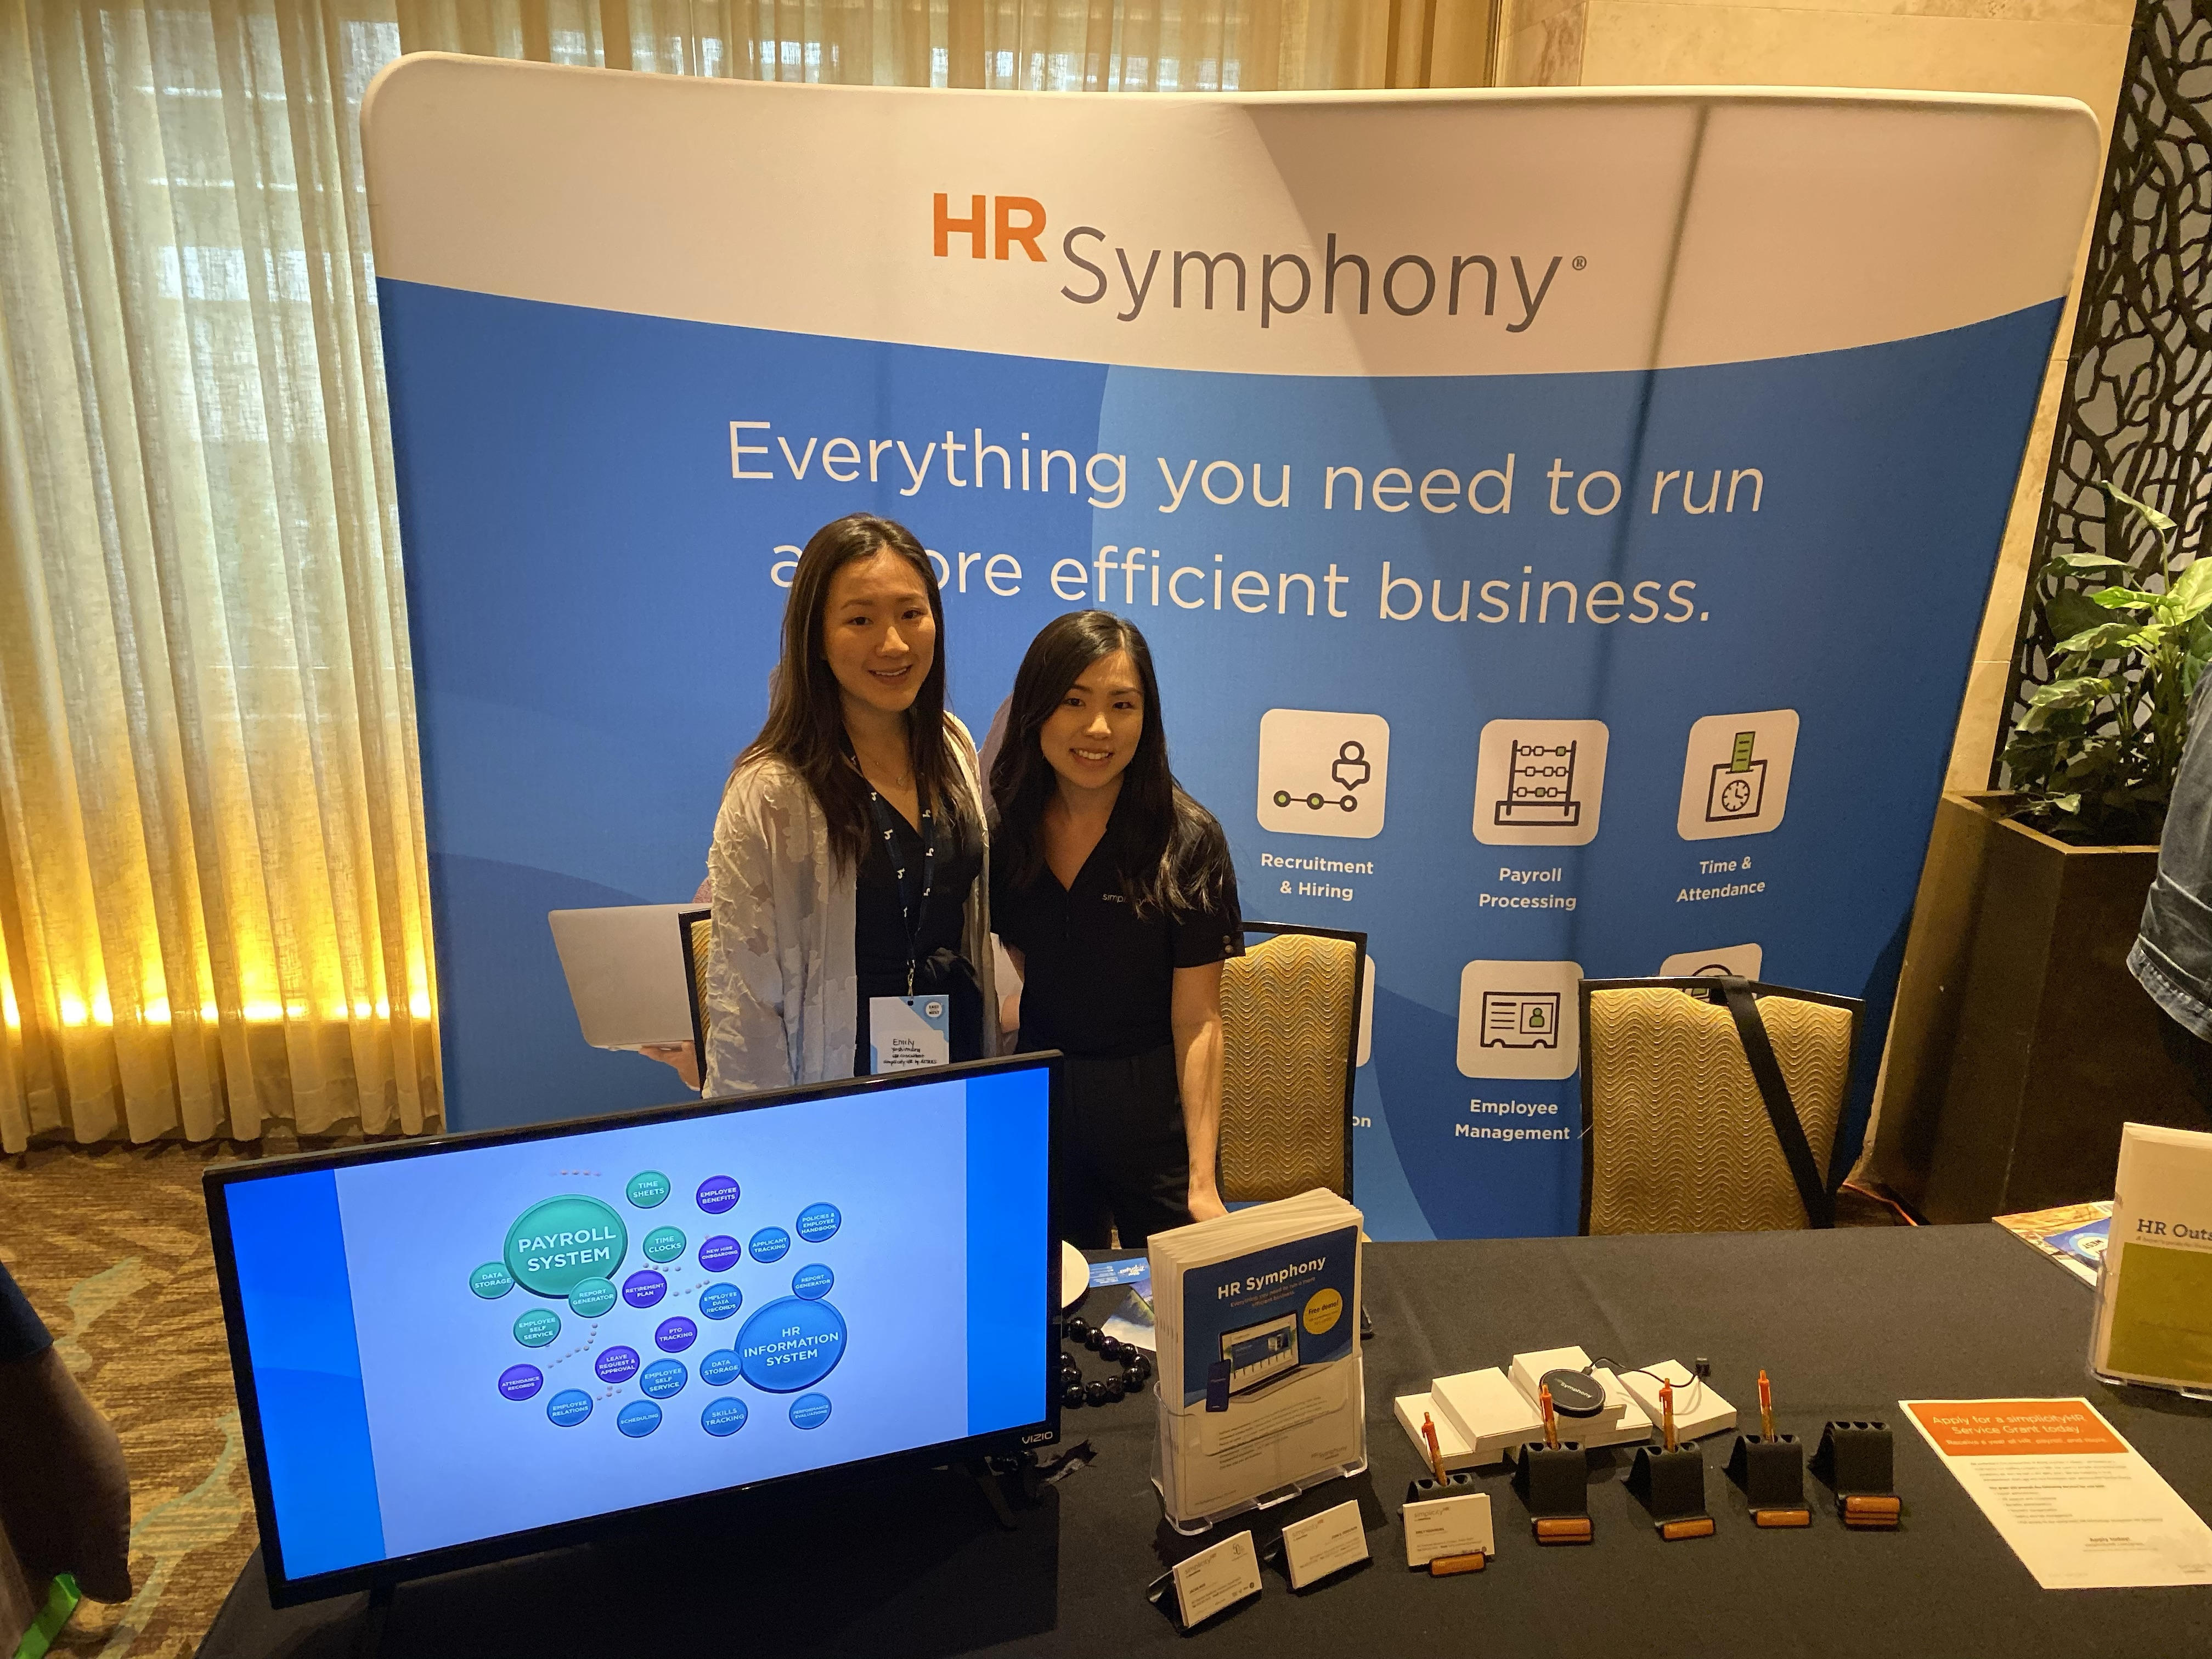 East Meets West 2020: HR Symphony booth